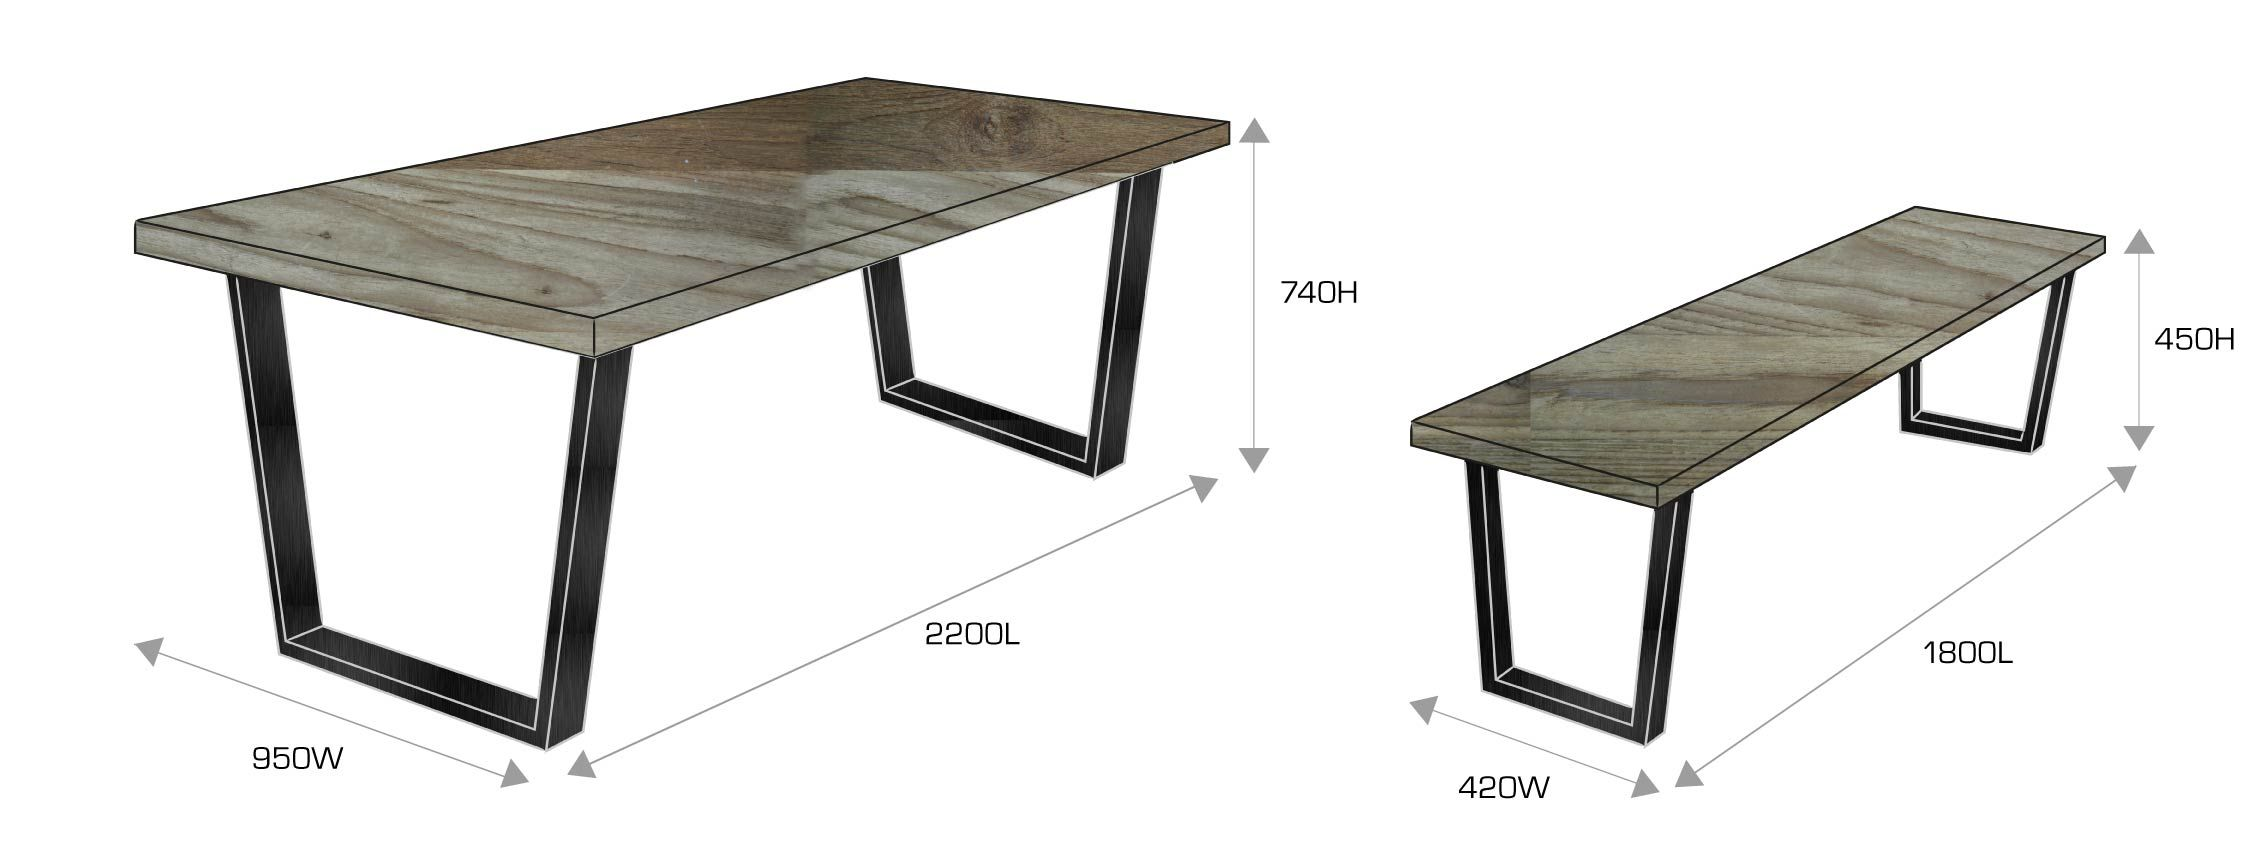 Remarkable Image Result For Bench Seat Height Dining Table Dimensions Onthecornerstone Fun Painted Chair Ideas Images Onthecornerstoneorg